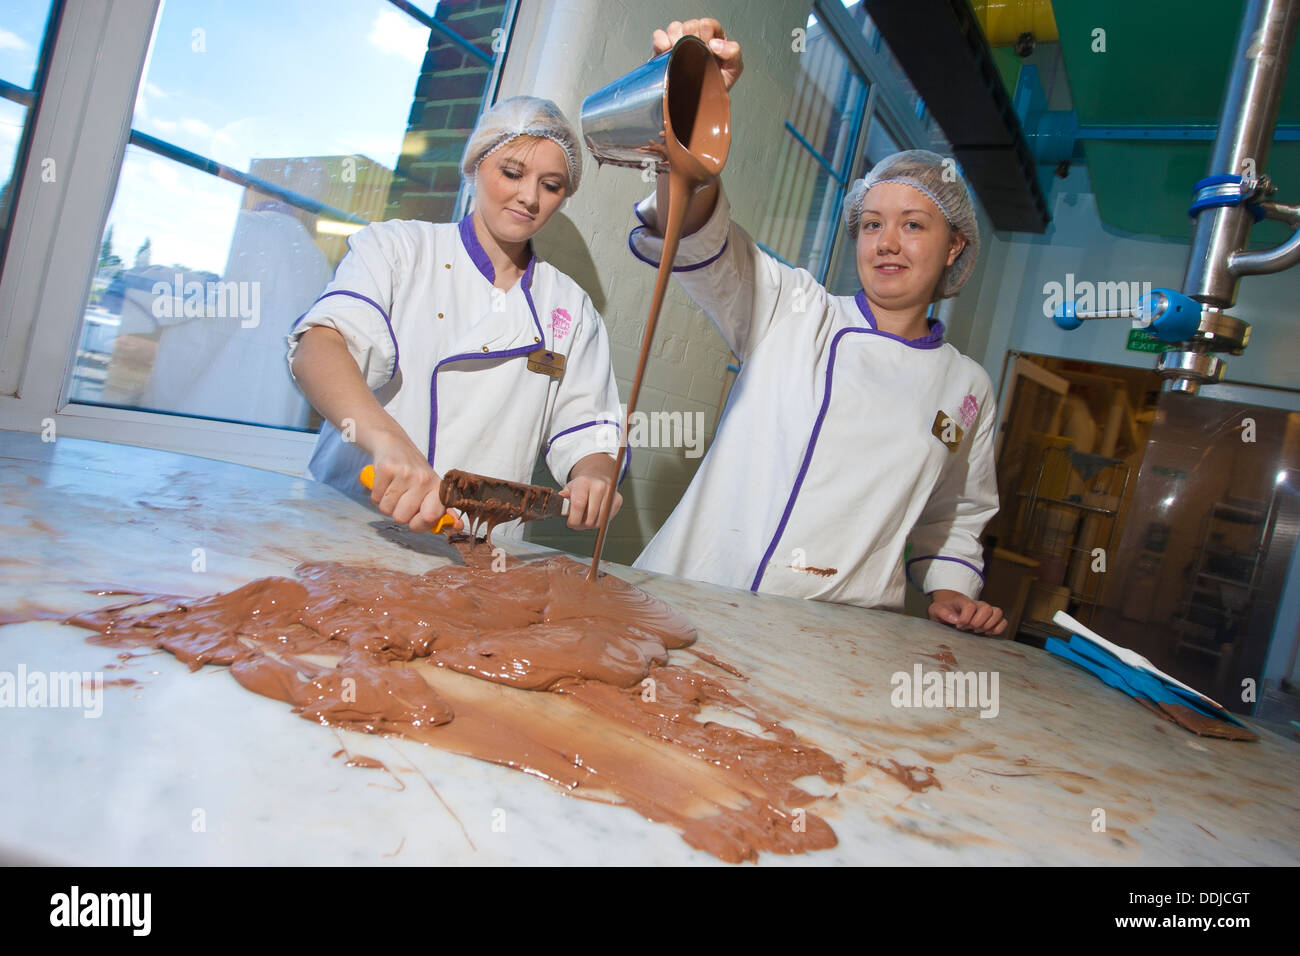 Workers At Cadbury World On The Site Of The Cadbury Chocolate Factory Founded By George Cadbury In 1879 England United Kingdom